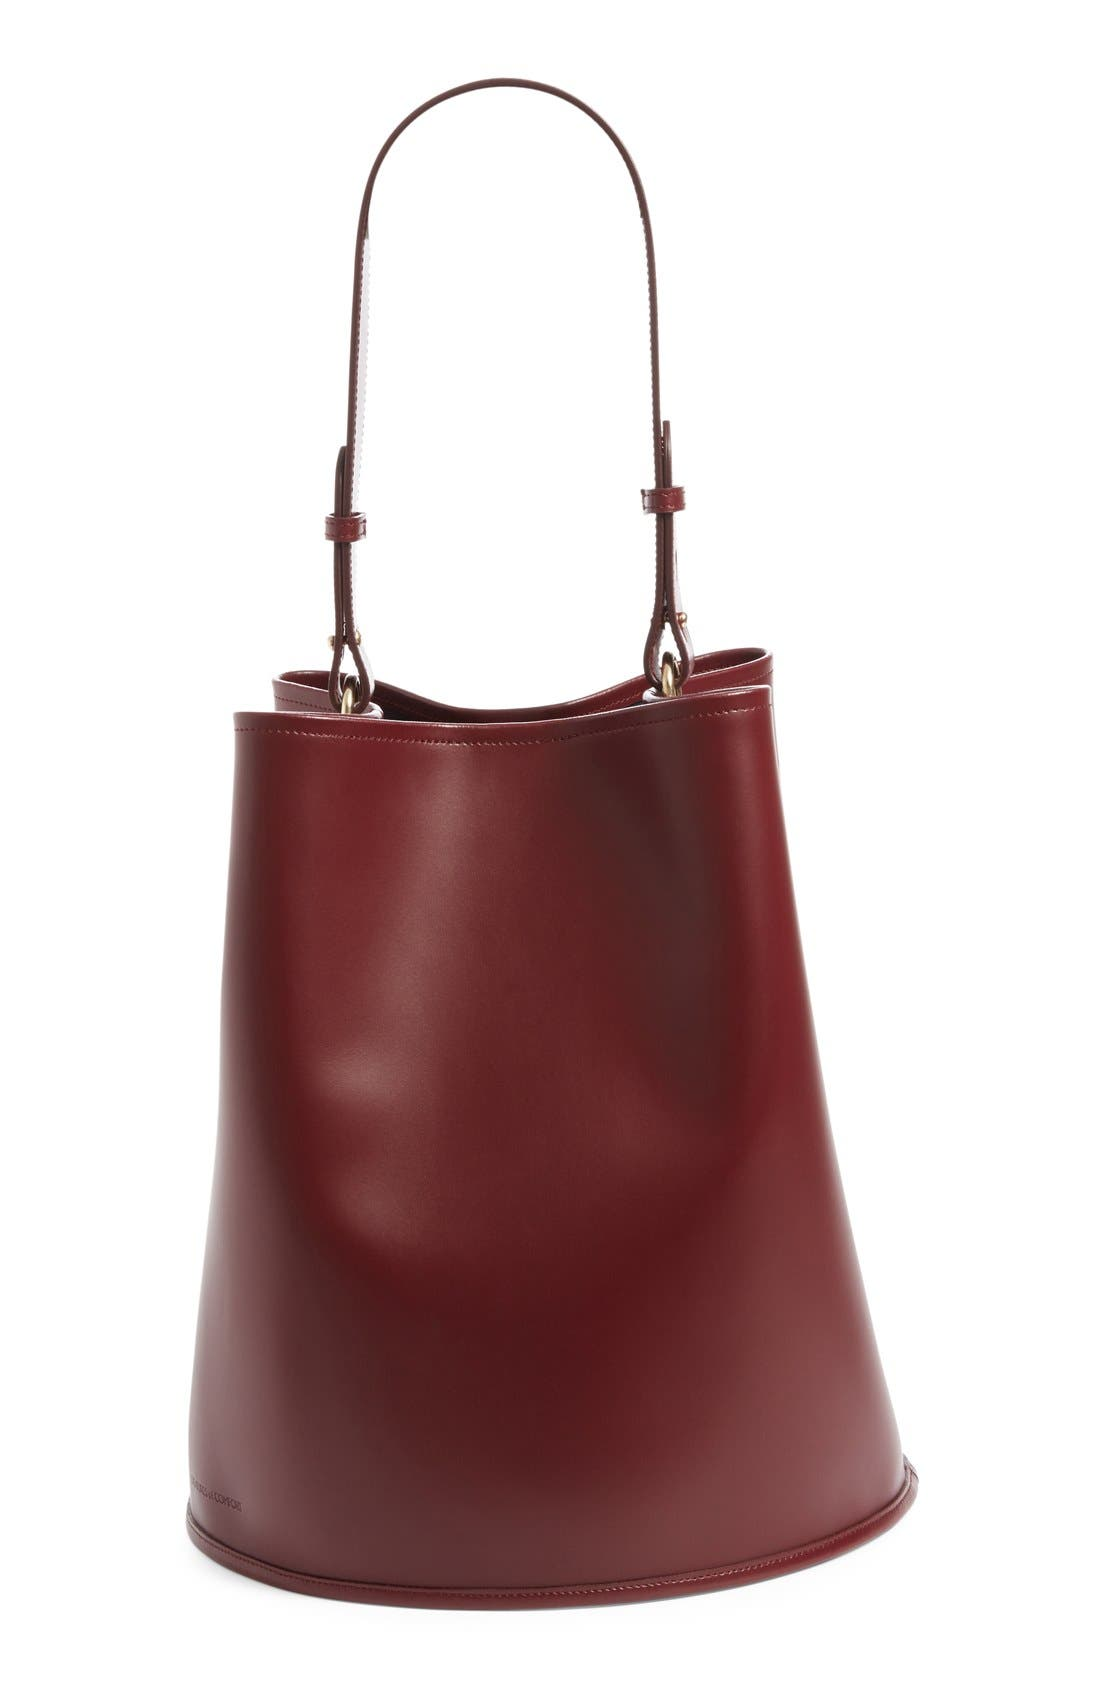 Creatures of Comfort Large Calfskin Leather Bucket Bag